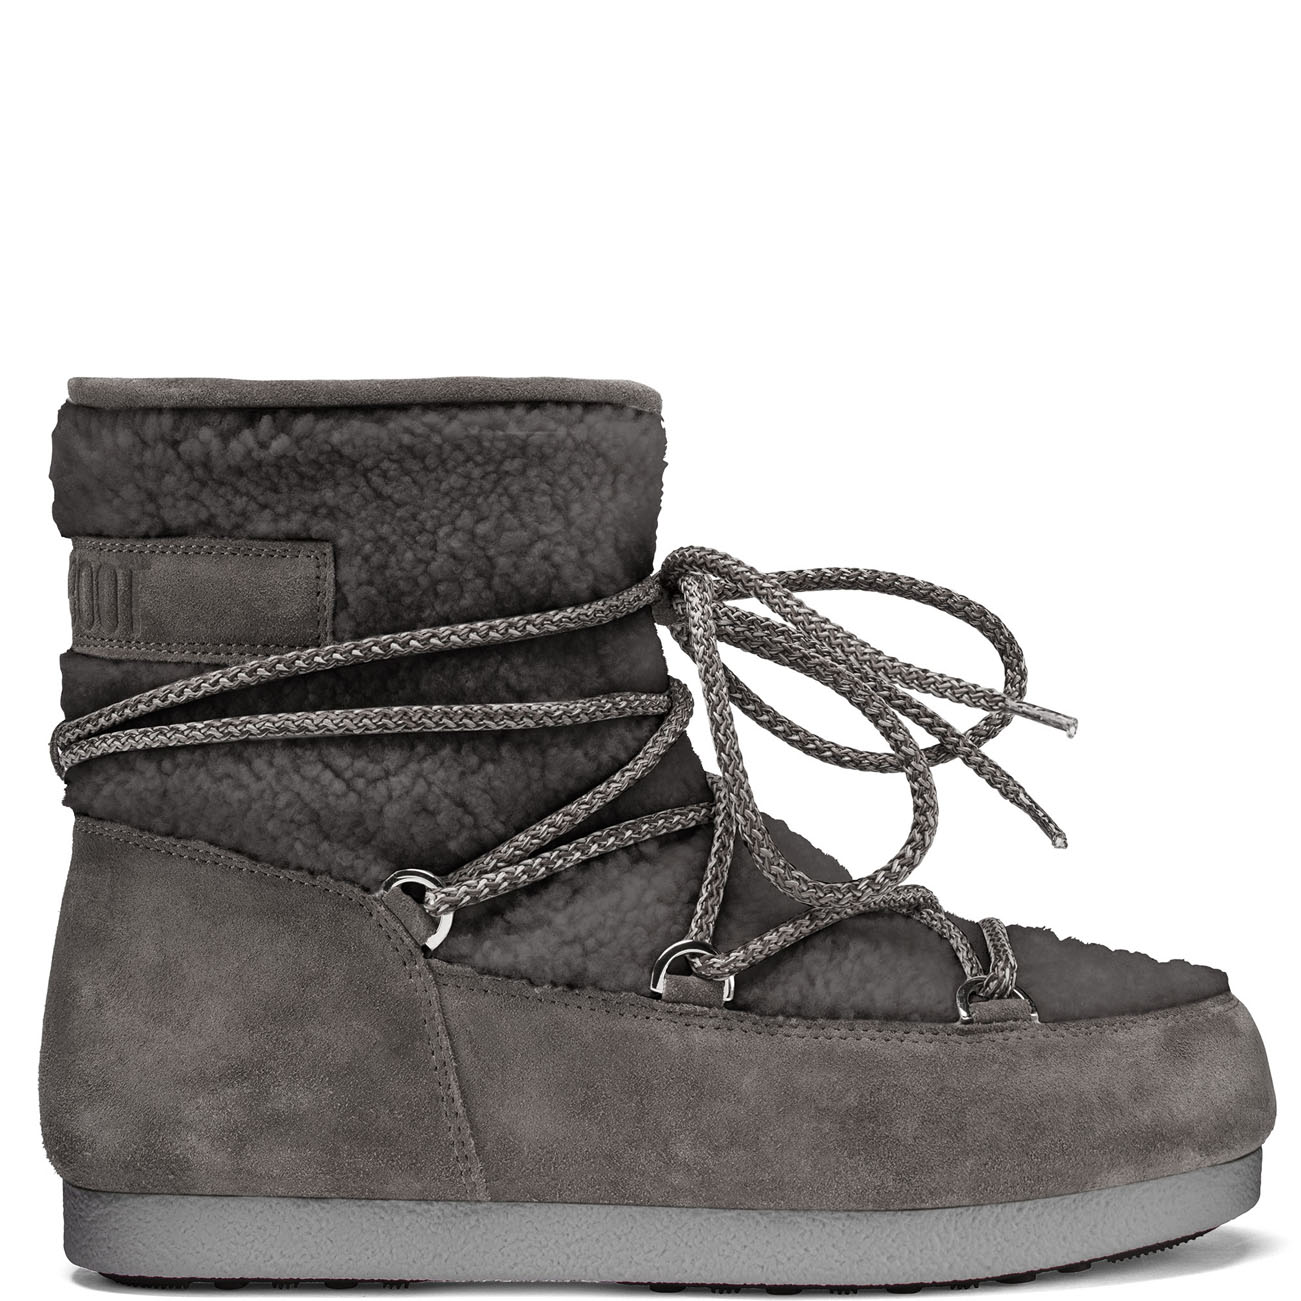 Ladies Tecnica Tecnica Tecnica Moon Boot Far Side Low Shearling Thermal Winter Boots All Sizes 18ab9e